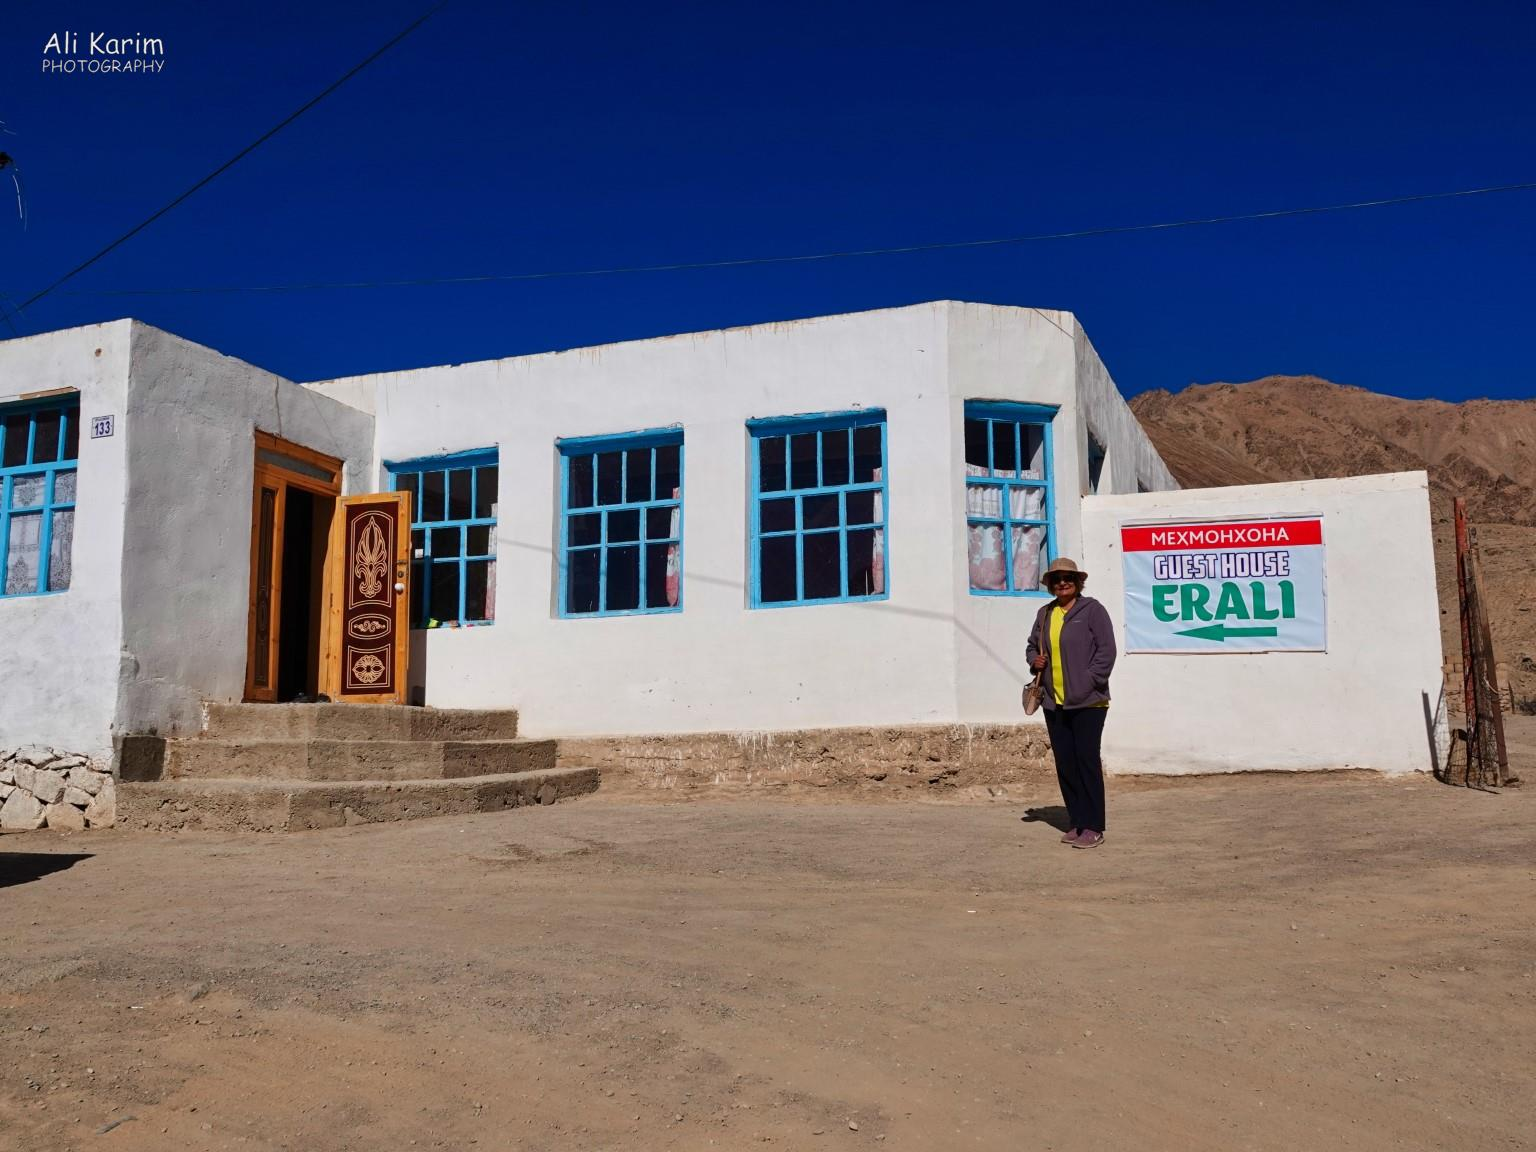 More Murghab & Alichur, Tajikistan, This was the Home stay we stayed at; belongs to Erali's family